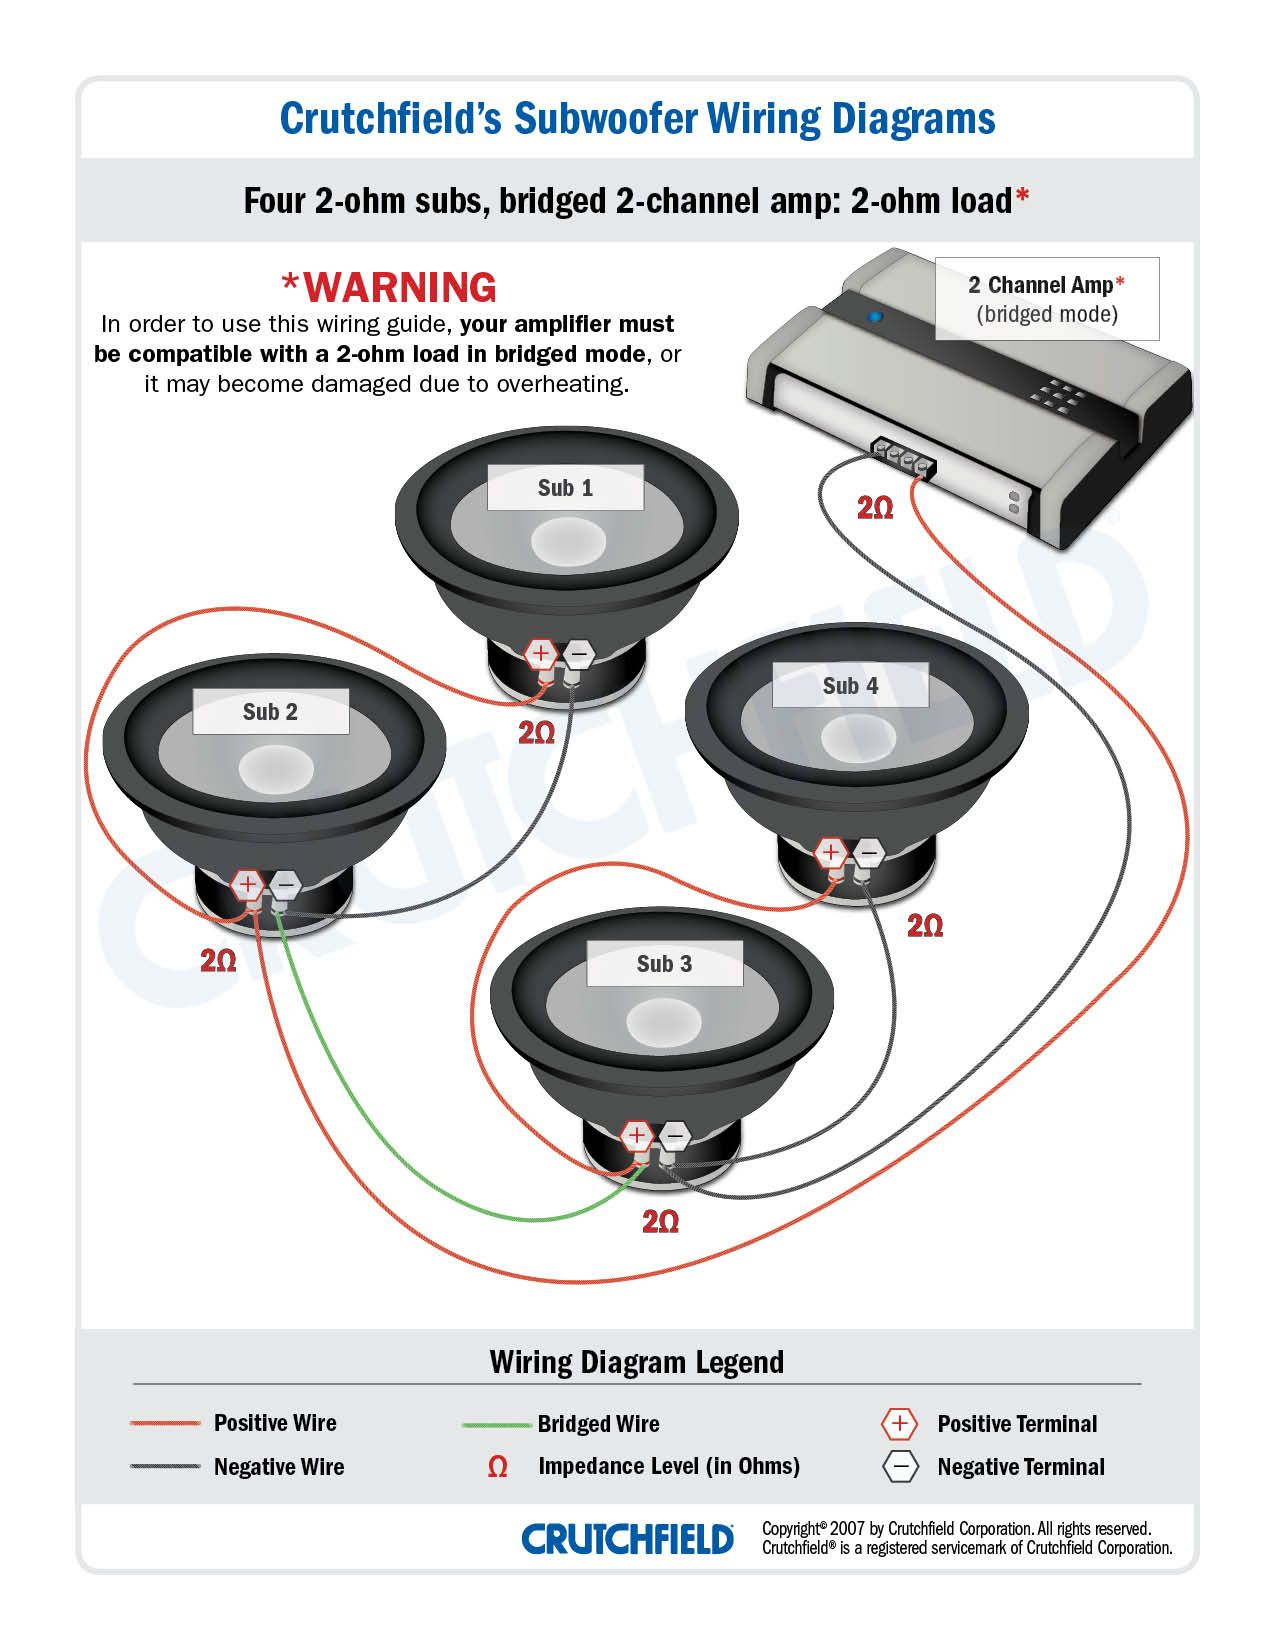 top 10 subwoofer wiring diagram free download 4 svc 2 ohm 2 ch low rh pinterest com wiring diagram for 2 subwoofers wiring diagram for subwoofers in a car